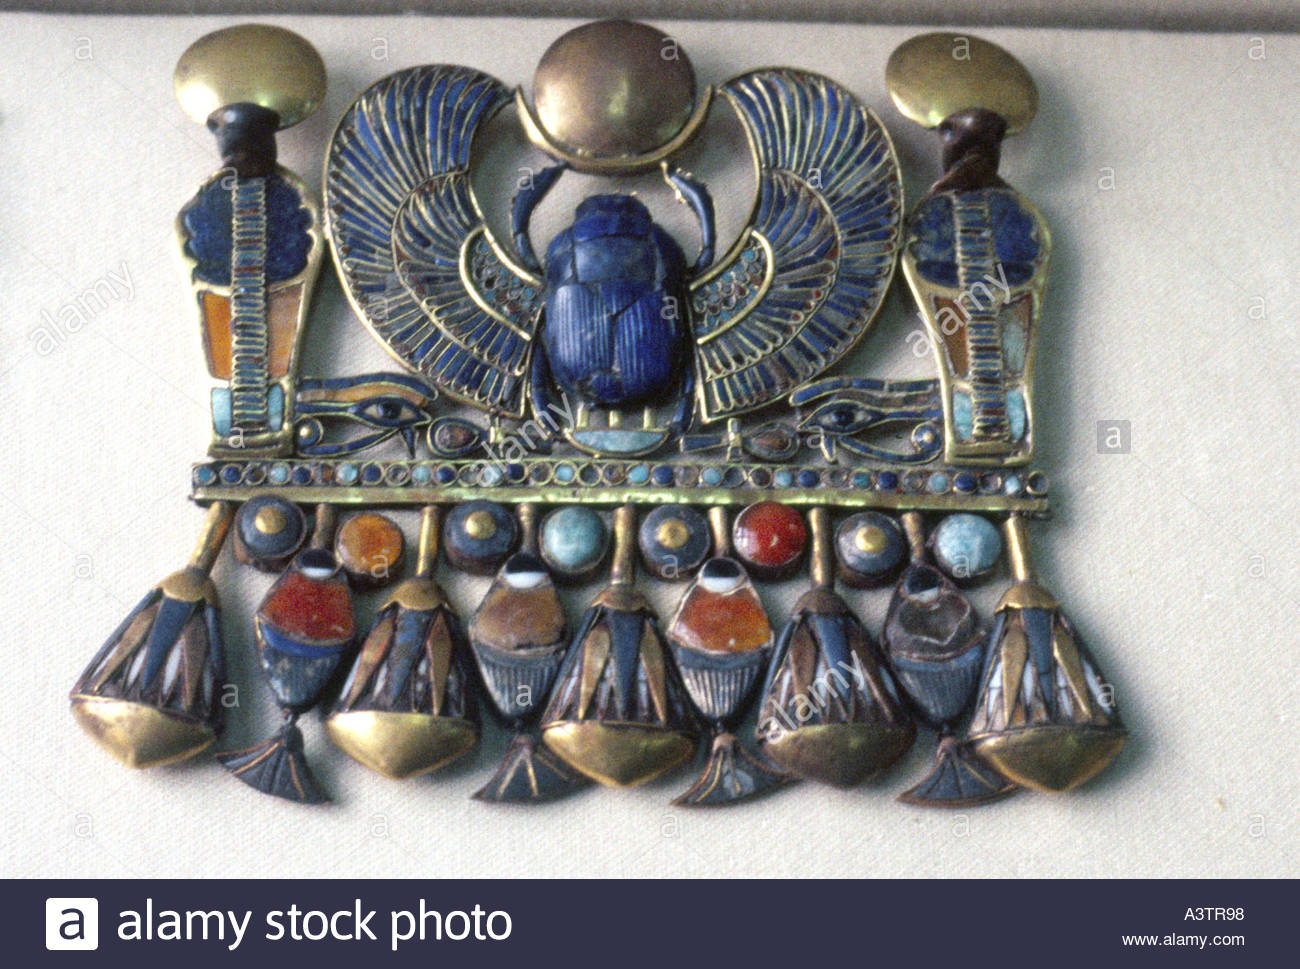 Exquisite intricate goldenpectoral jewellery of King Tutankhamun found in Valley of Kings tomb exhibited  Cairo - Stock Image